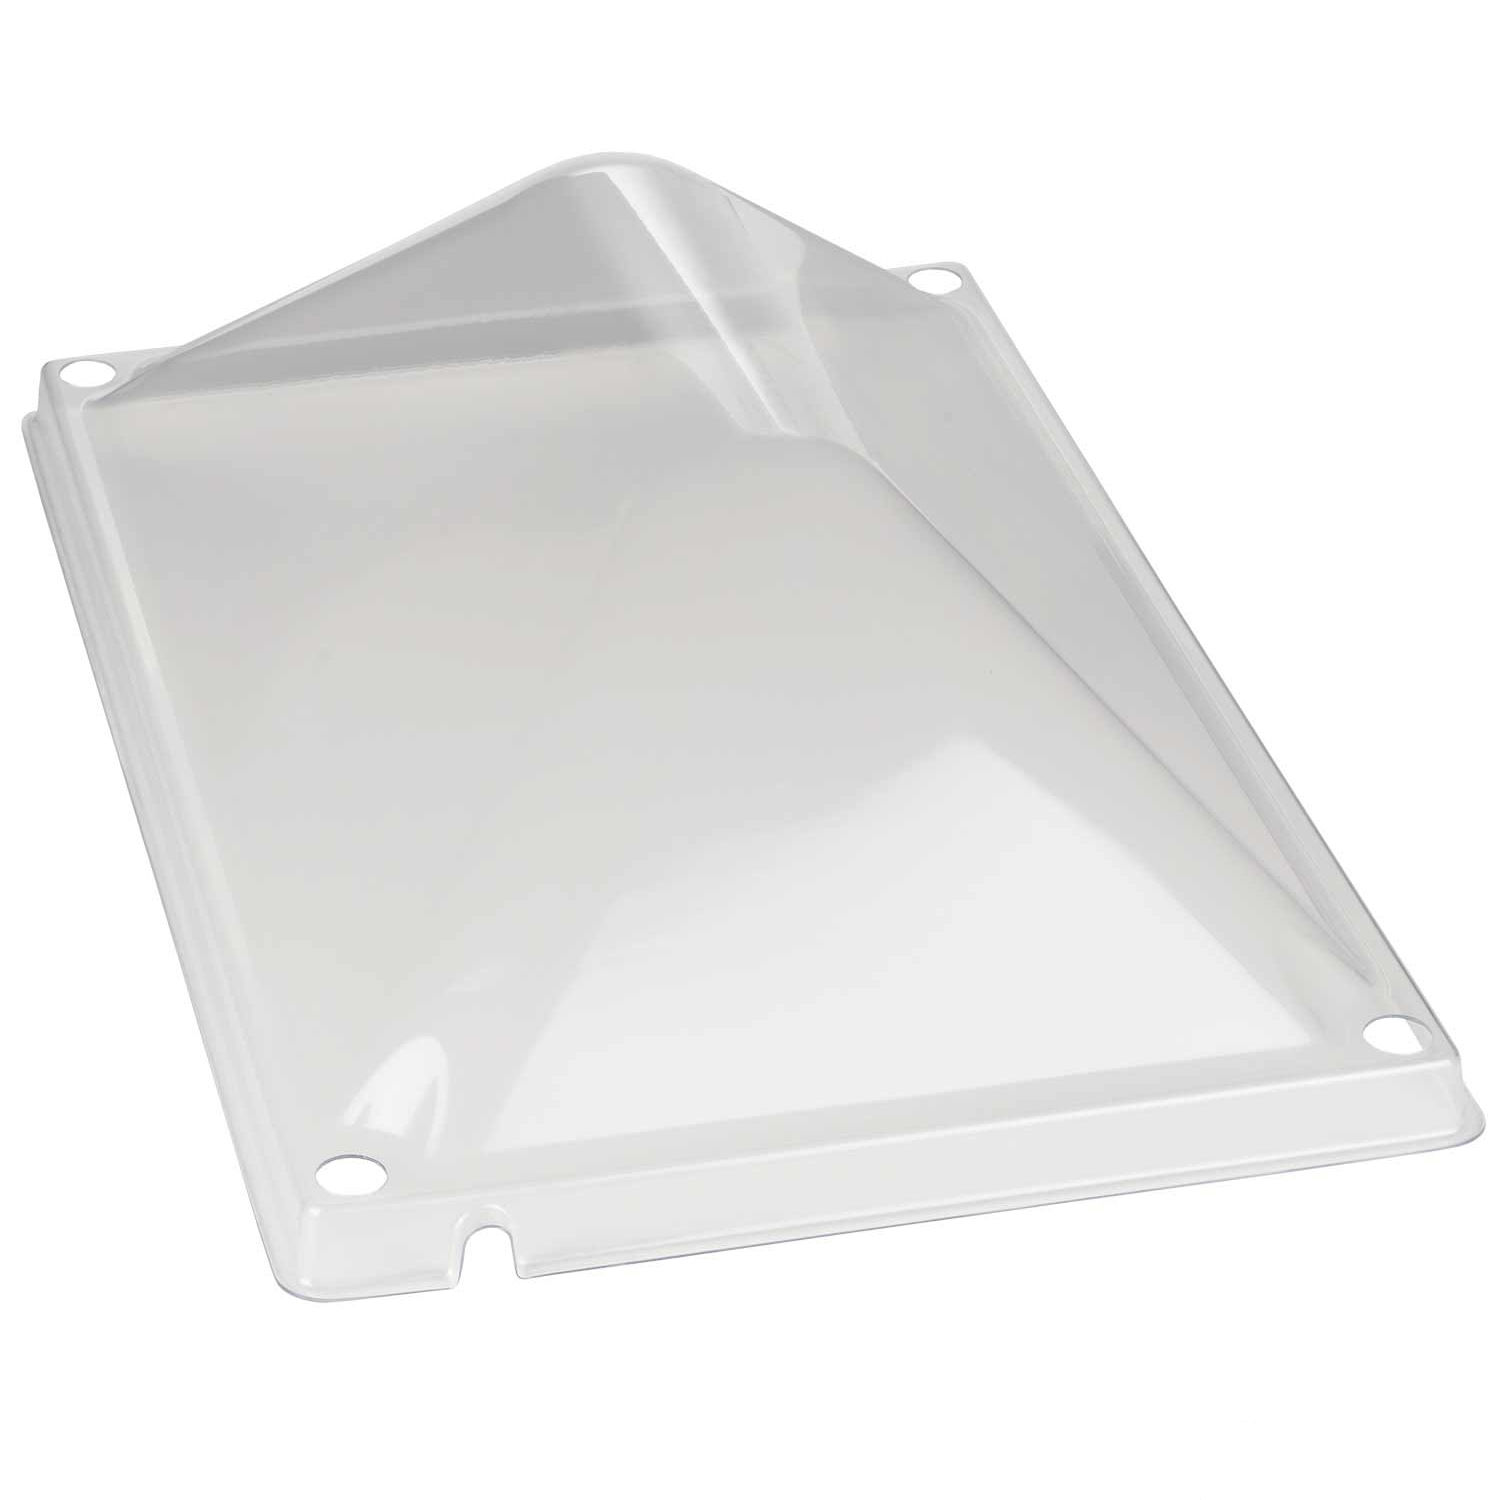 Heating Plates For Chick Brooders Premier1supplies